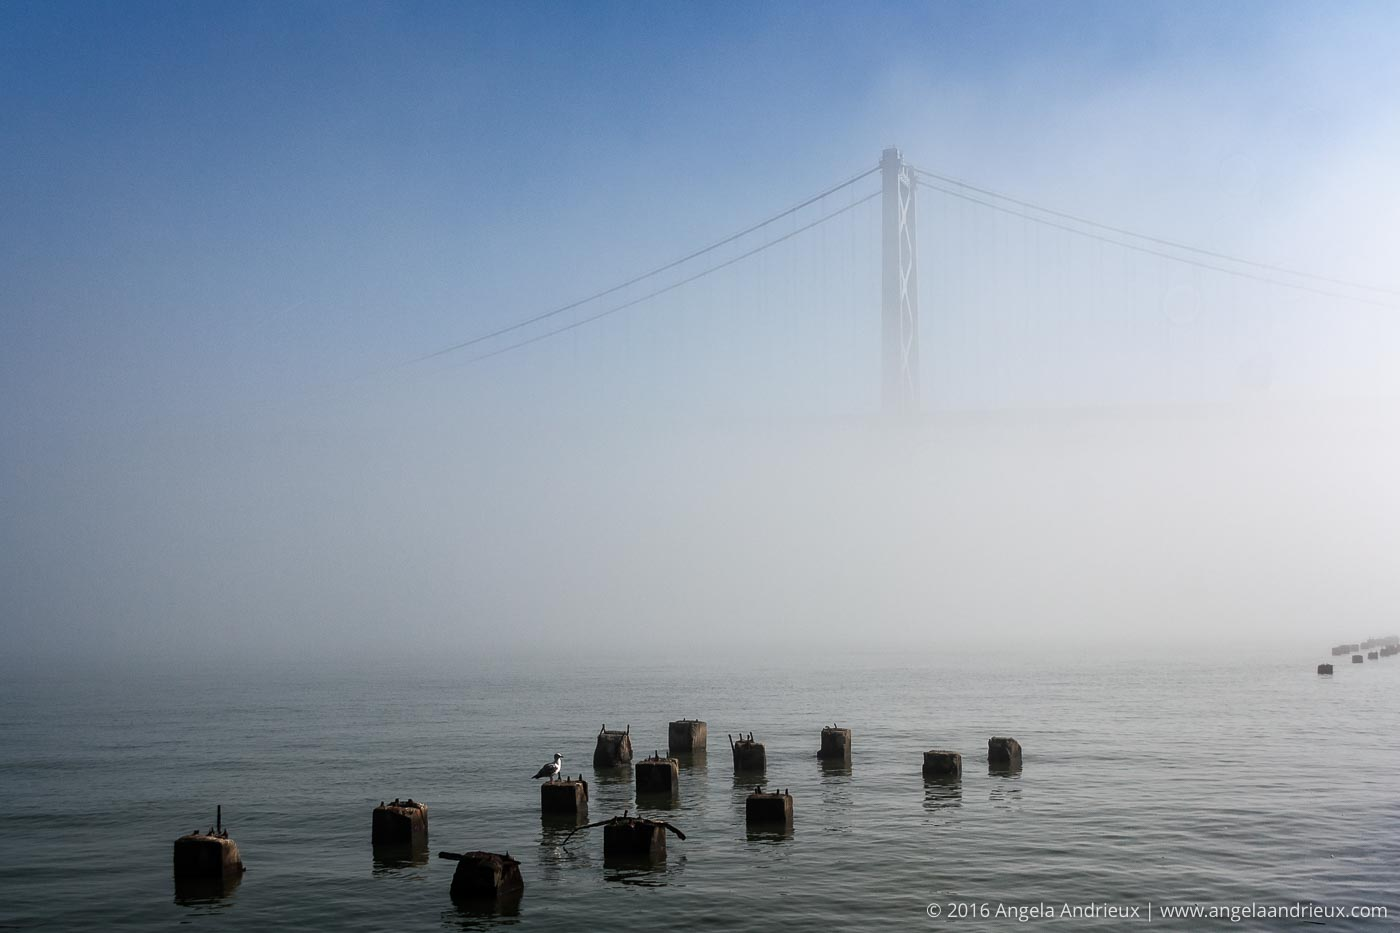 Foggy San Francisco Bay and Bay Bridge